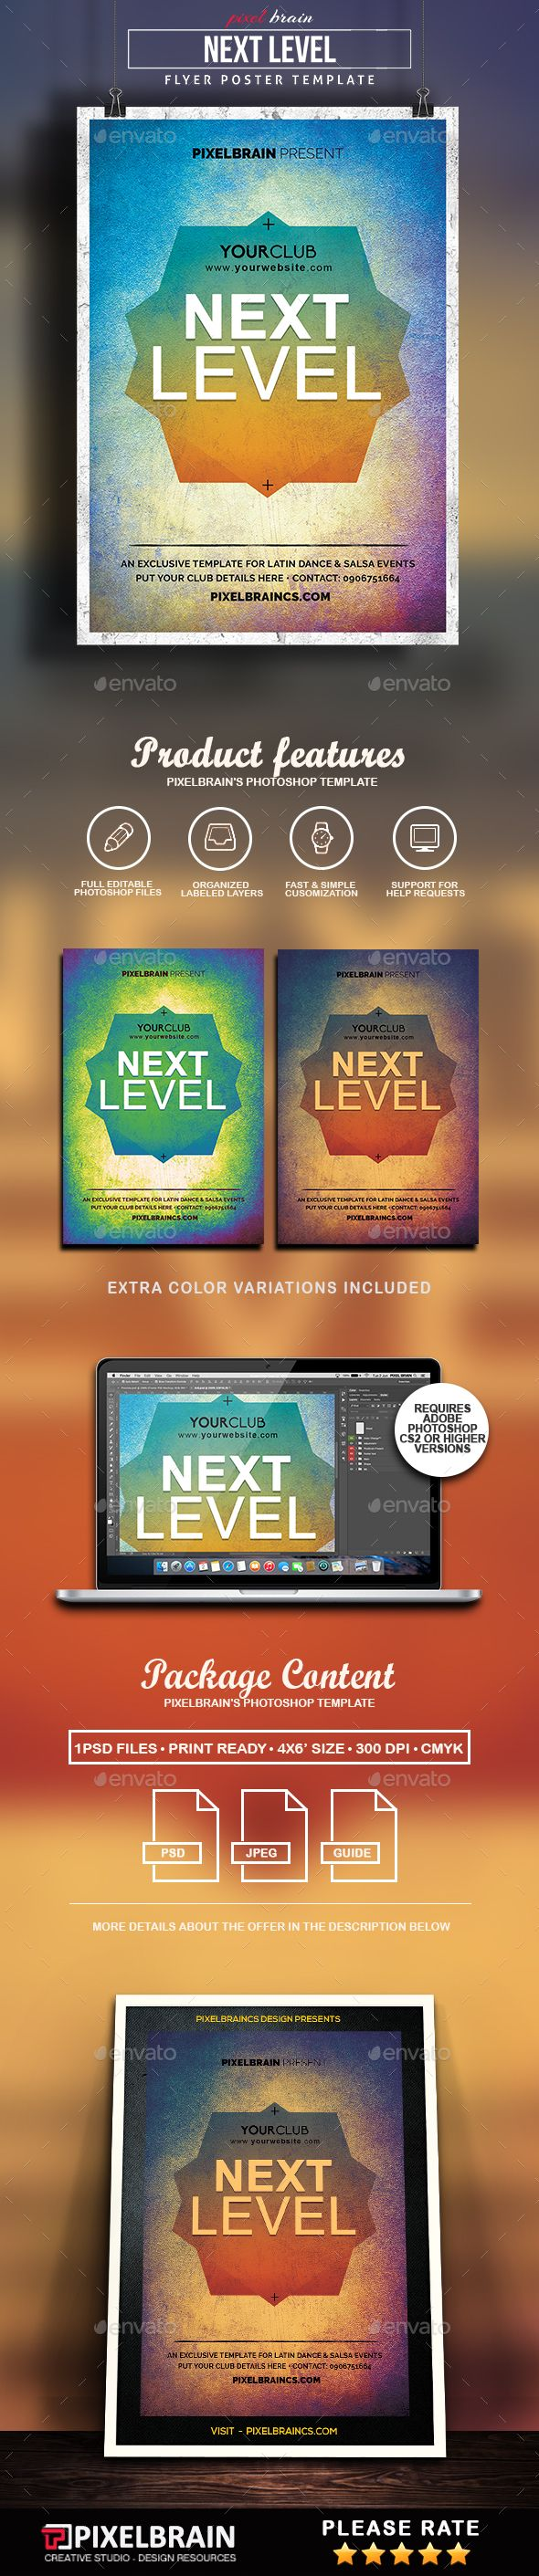 Next Level Flyer Template   Flyers, Flyer template and Bass